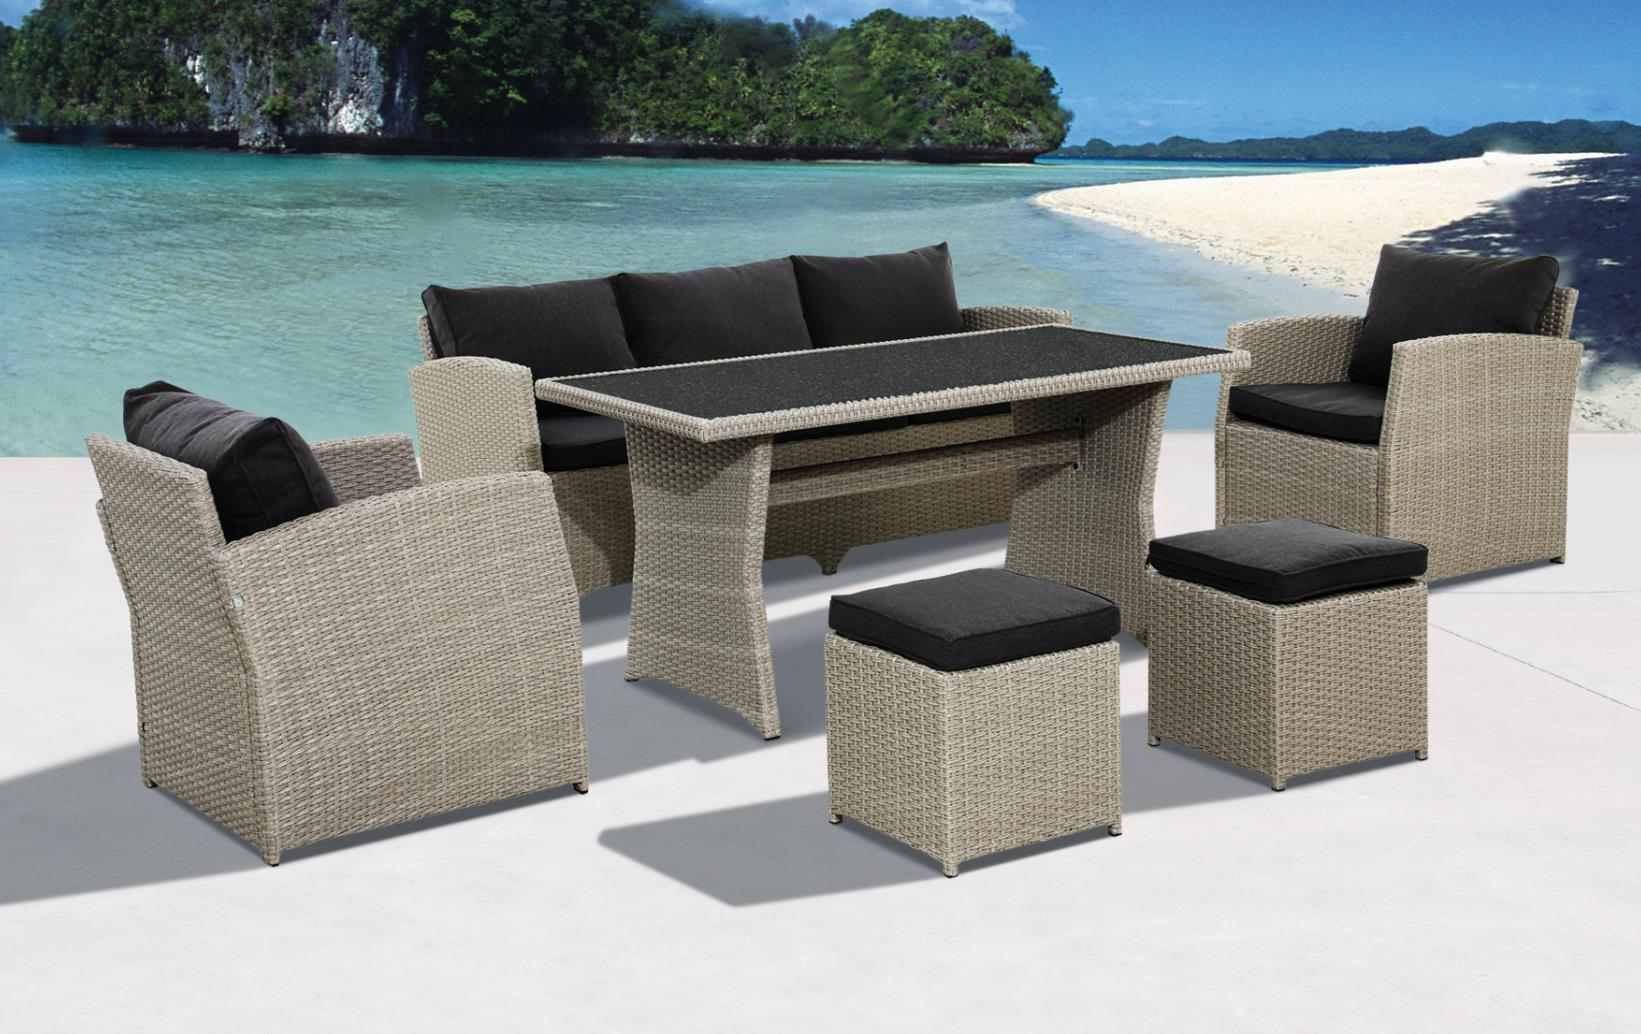 skyline polyrattan lounge gartenm bel sitzgruppe natur lounge m bel garten. Black Bedroom Furniture Sets. Home Design Ideas